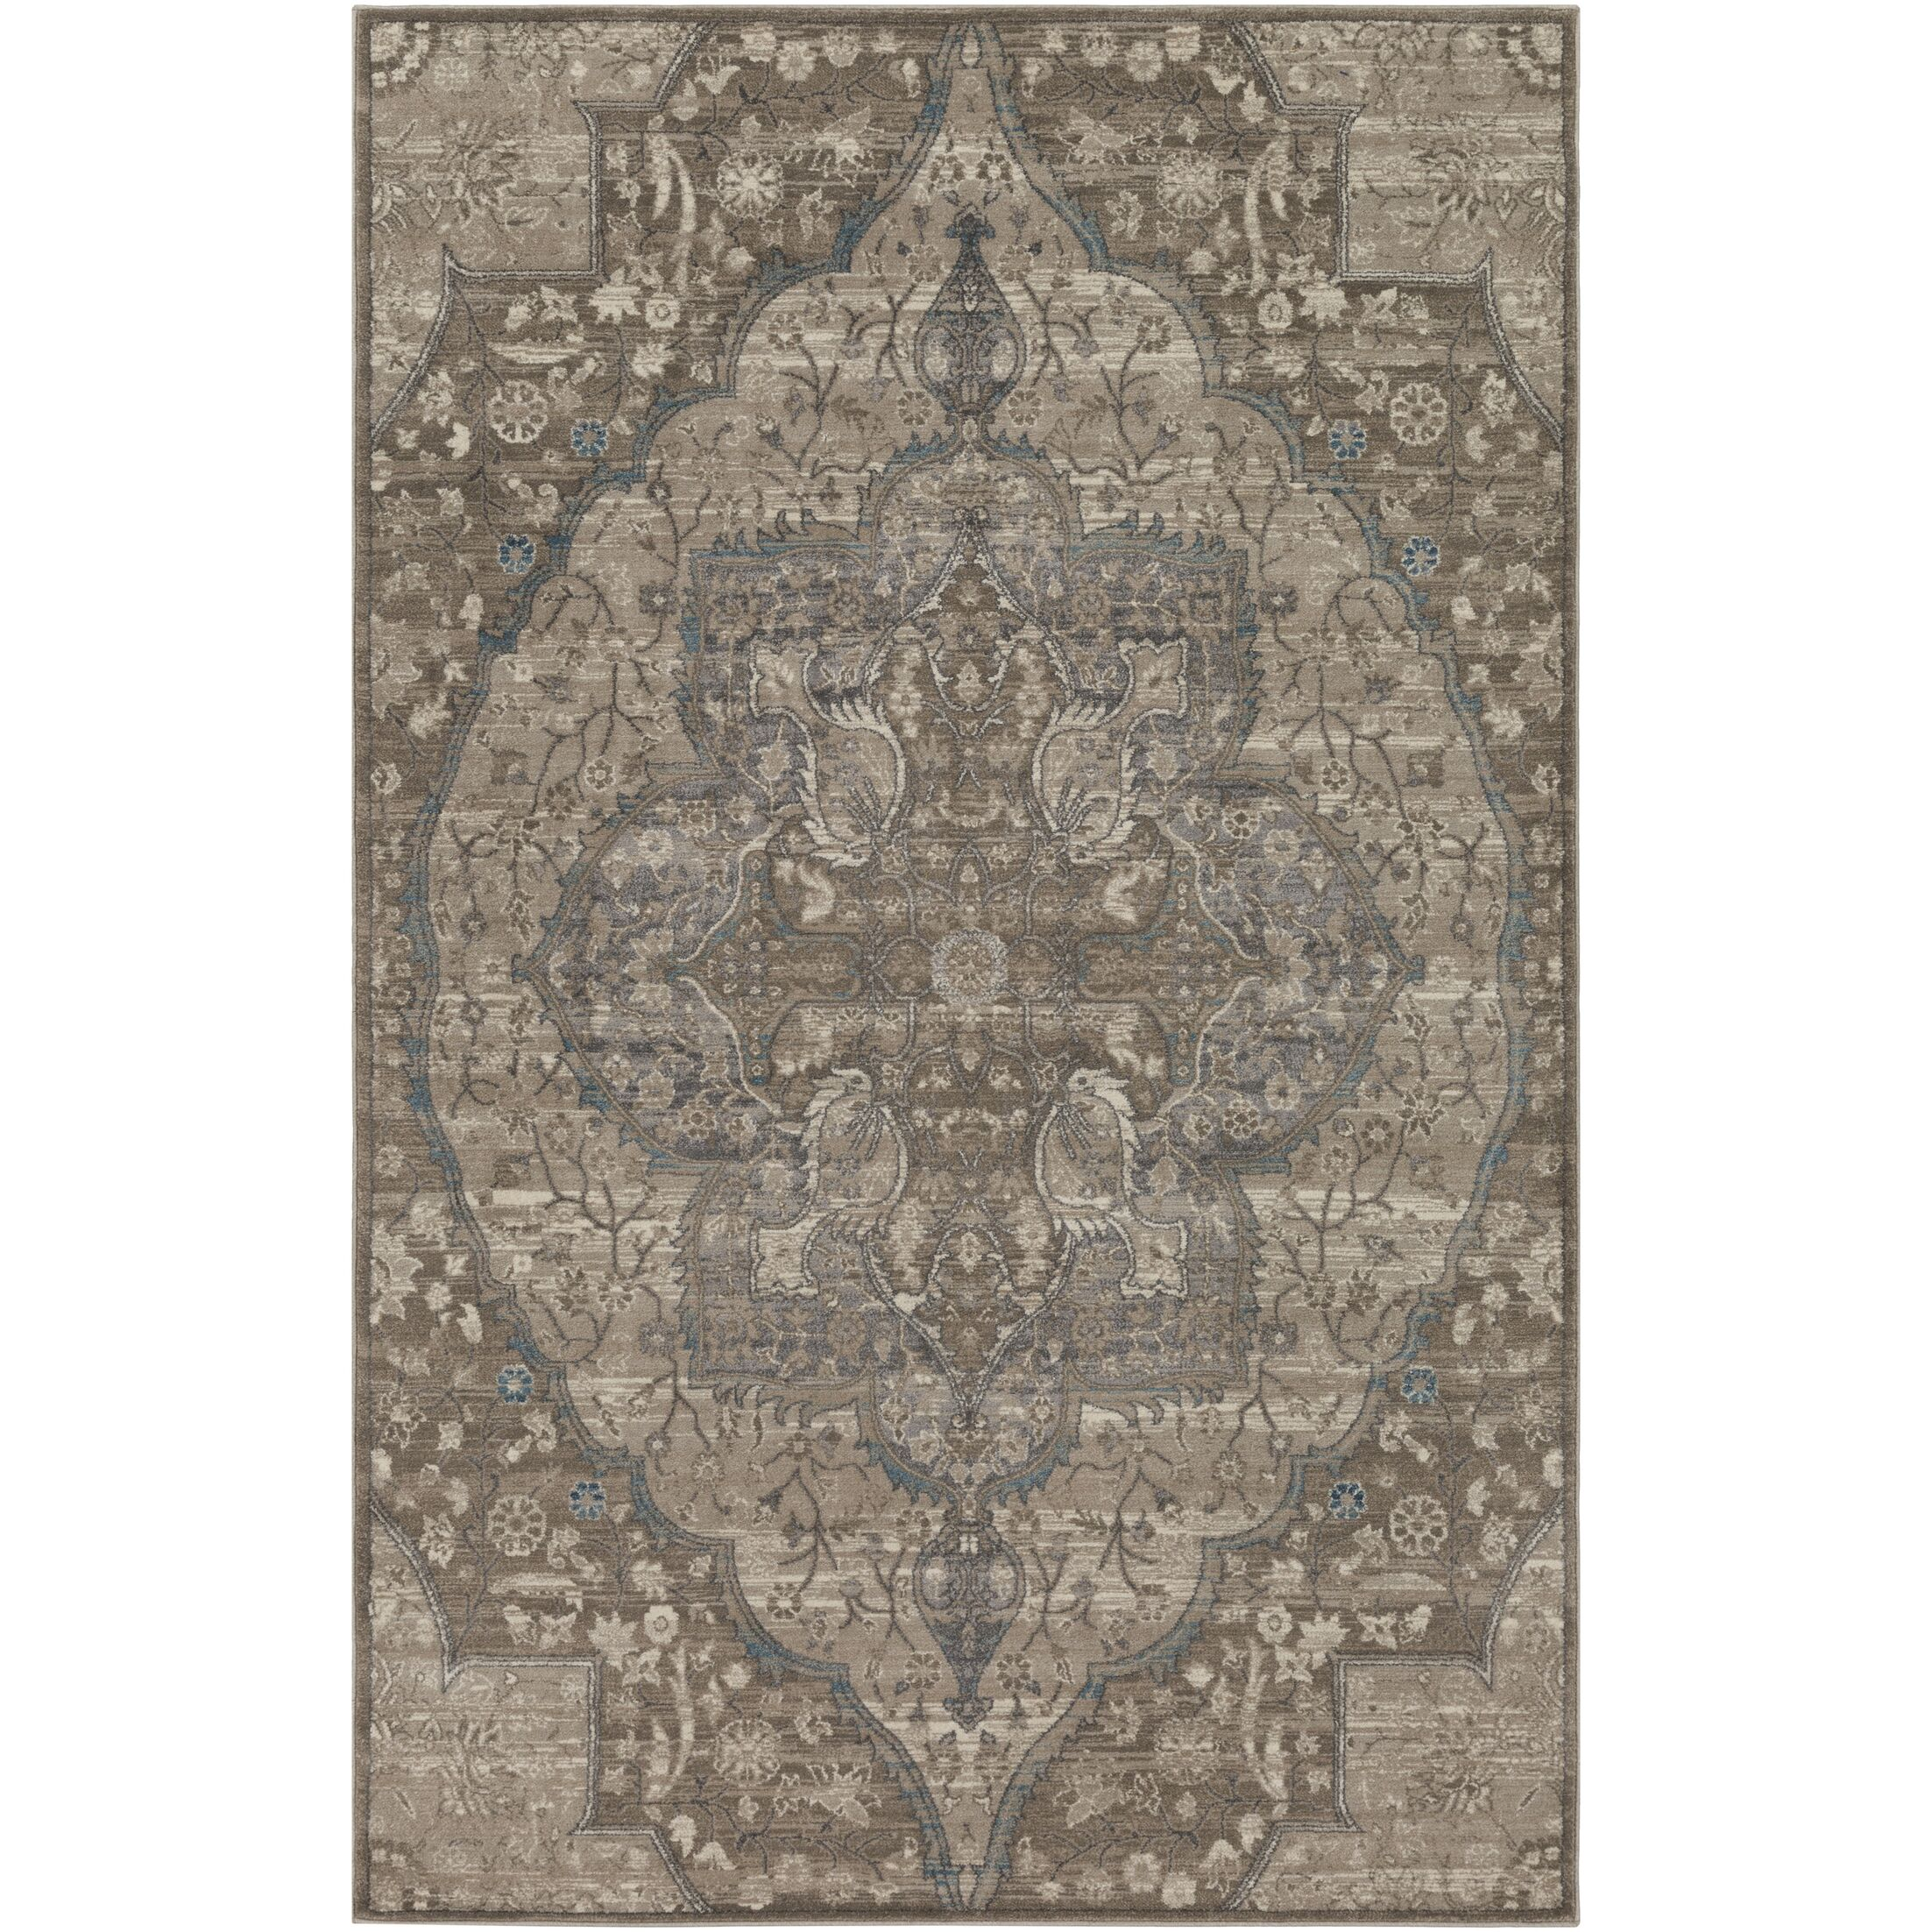 Ismael Floral Taupe/Cream Area Rug Rug Size: Rectangle 5' x 8'